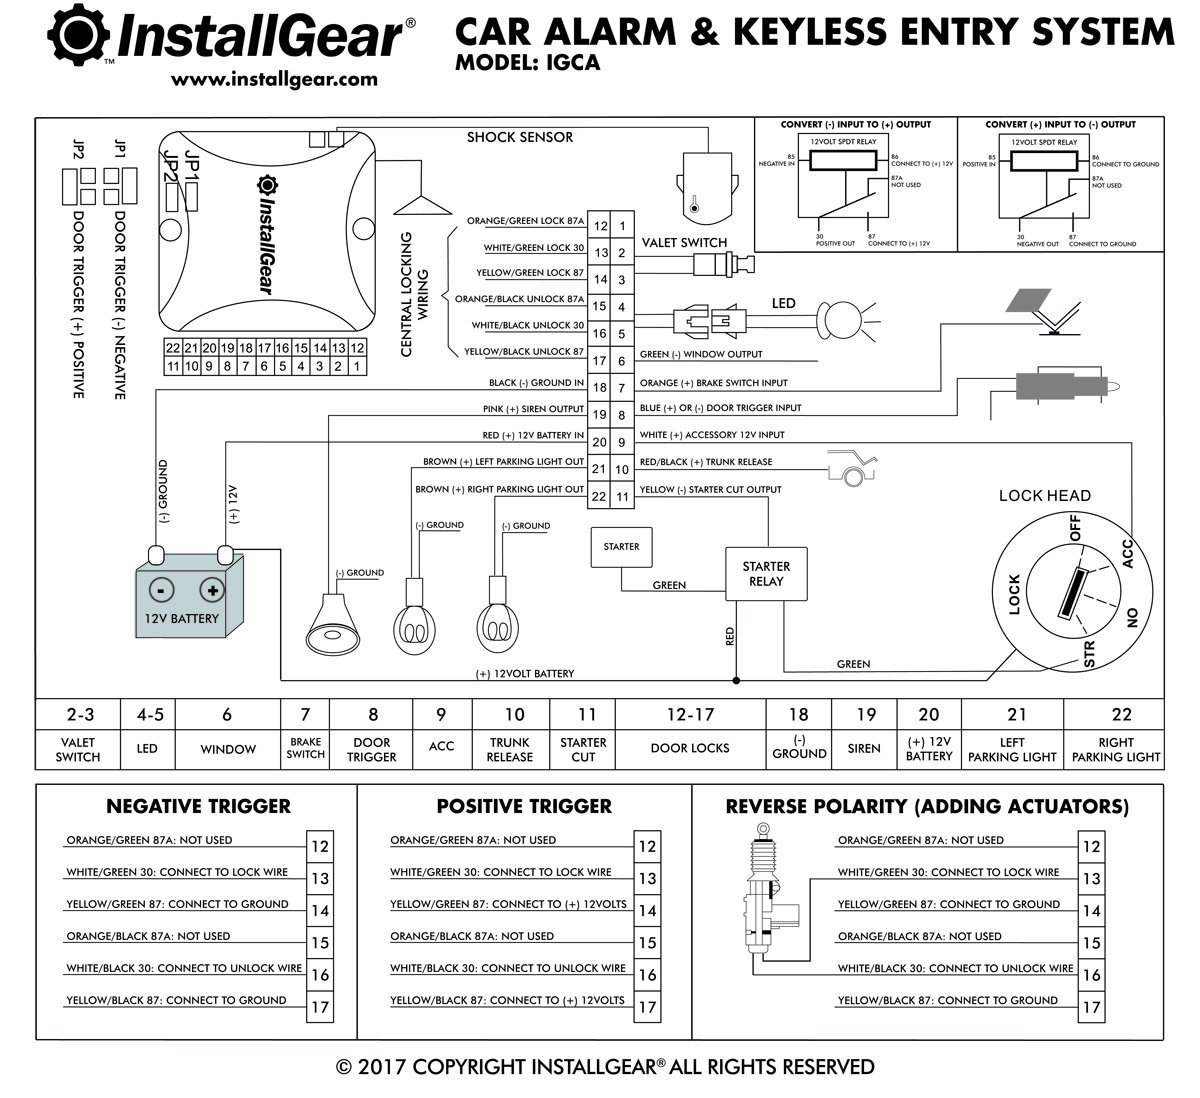 amazon com installgear car alarm security keyless entry system rh amazon com aftermarket keyless entry wiring diagram icd keyless entry wiring diagram